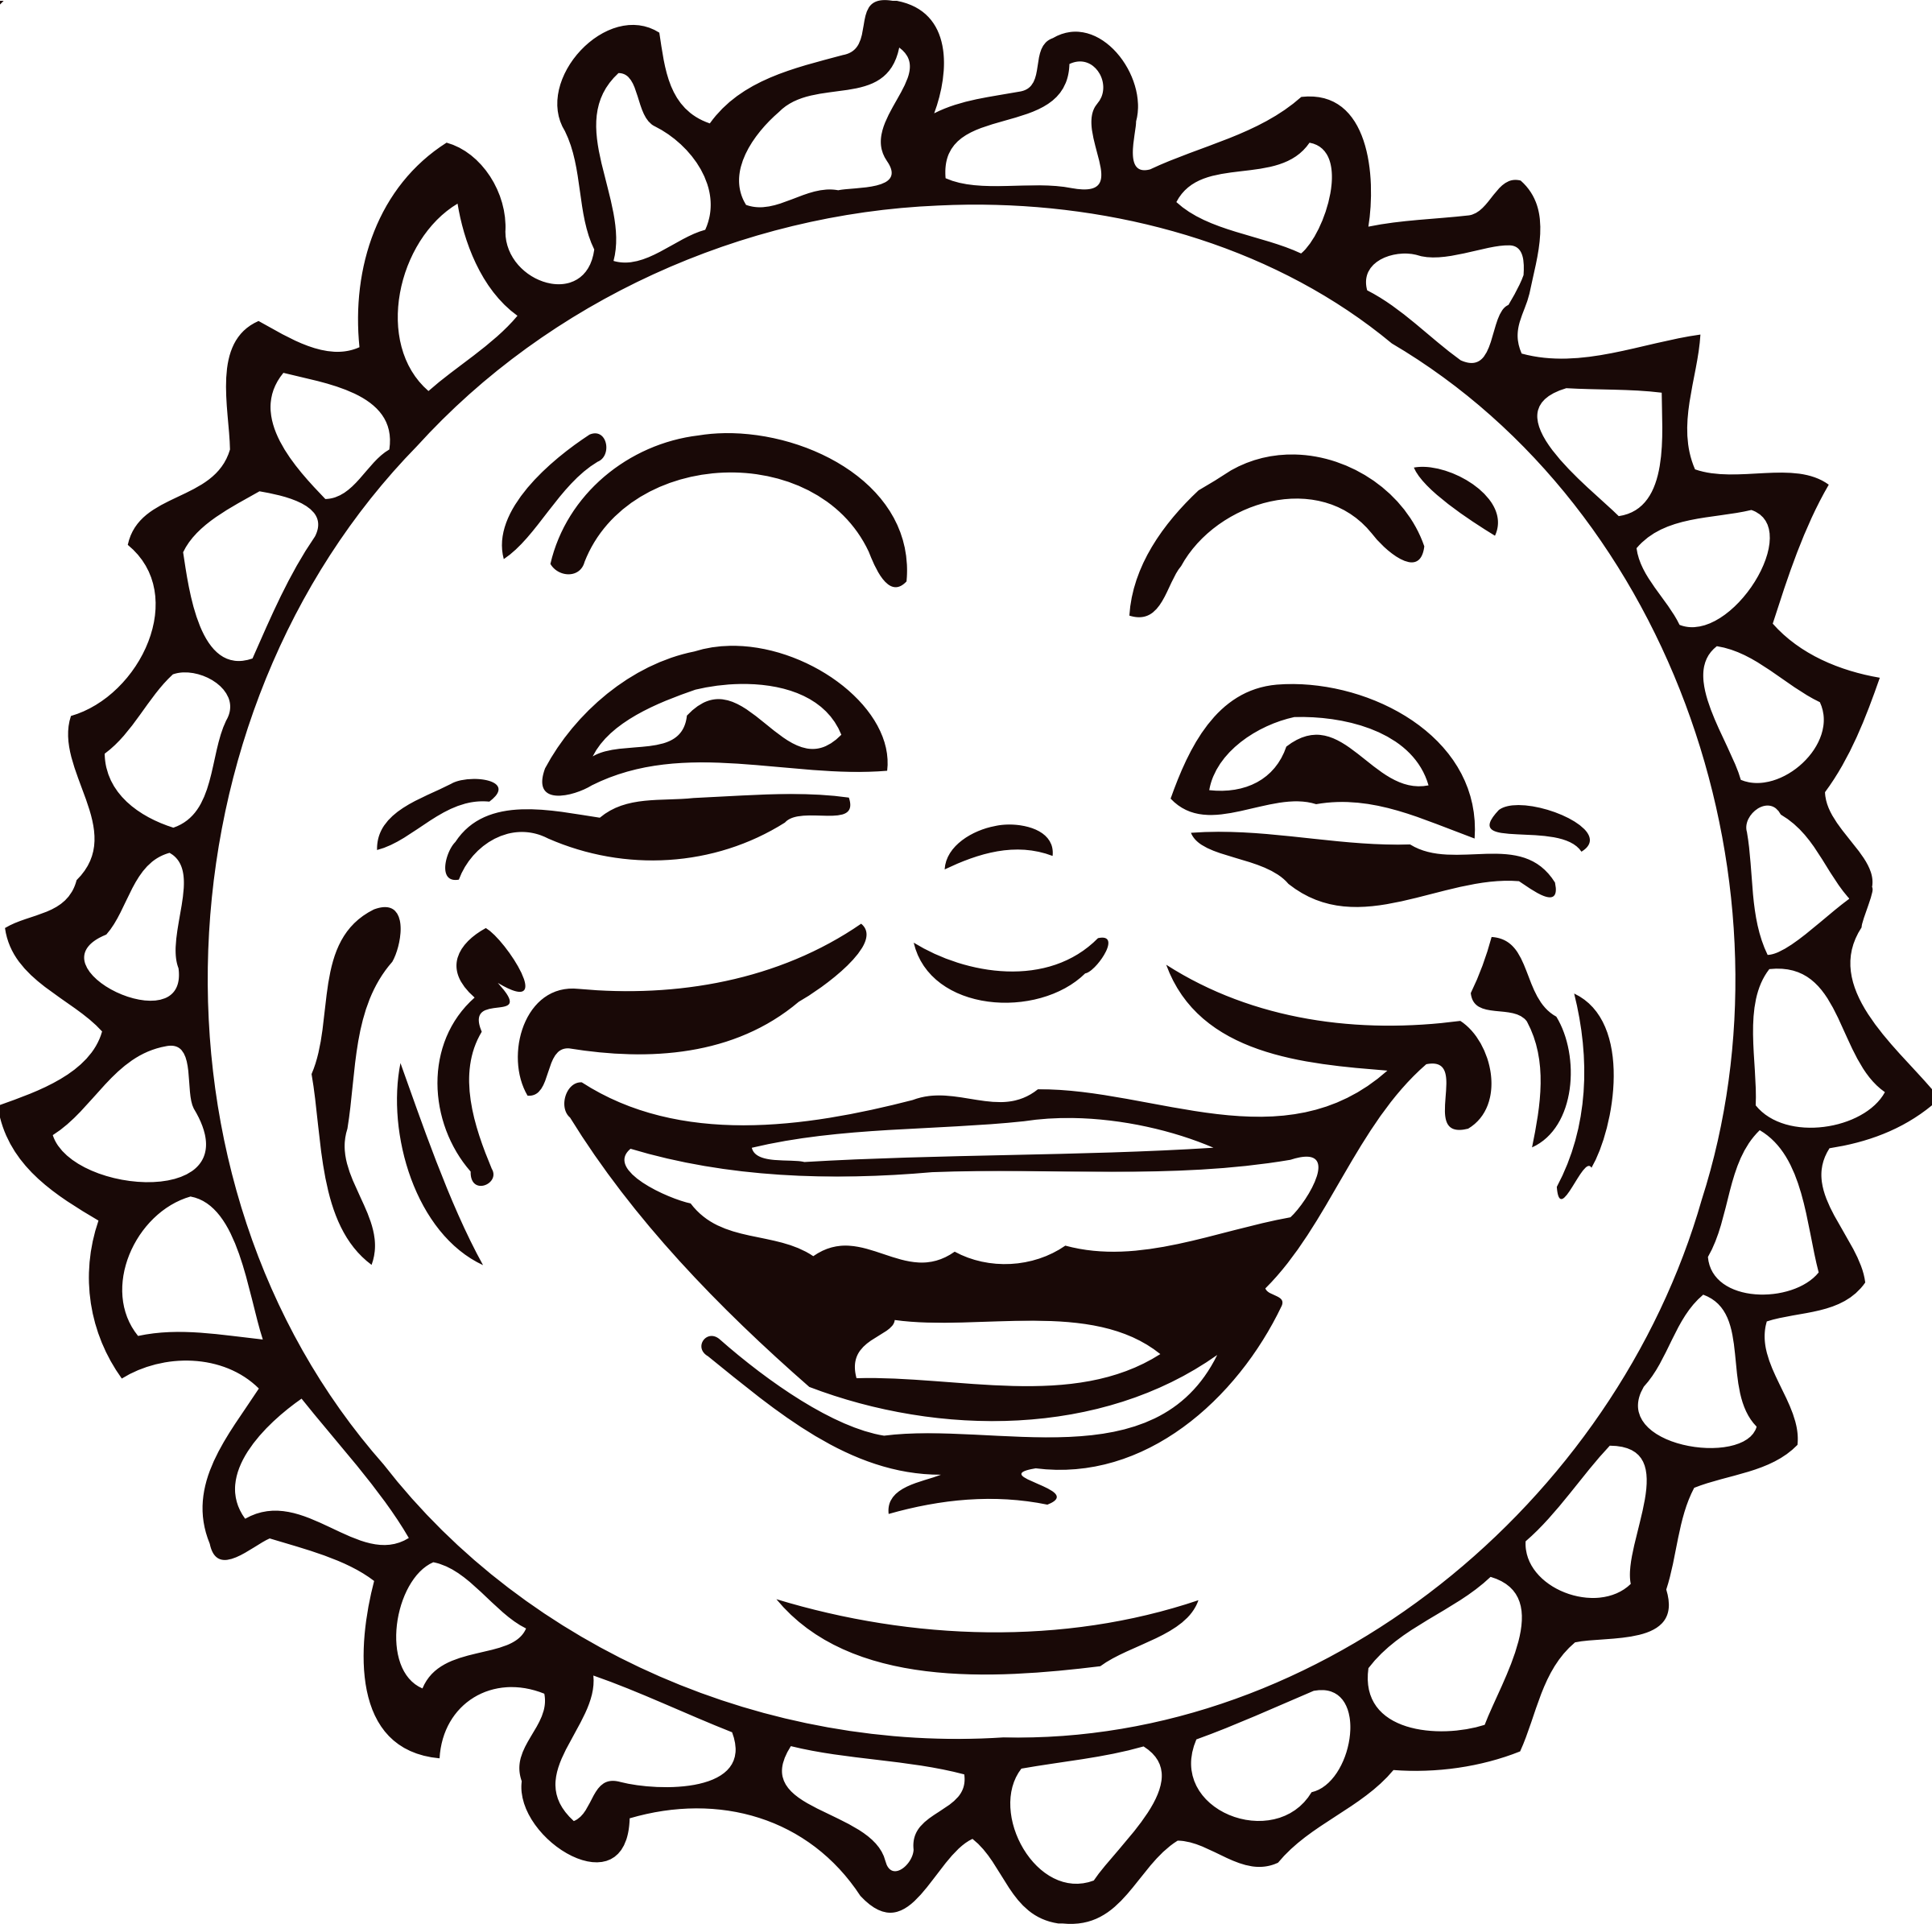 Sun face 2 by Firkin